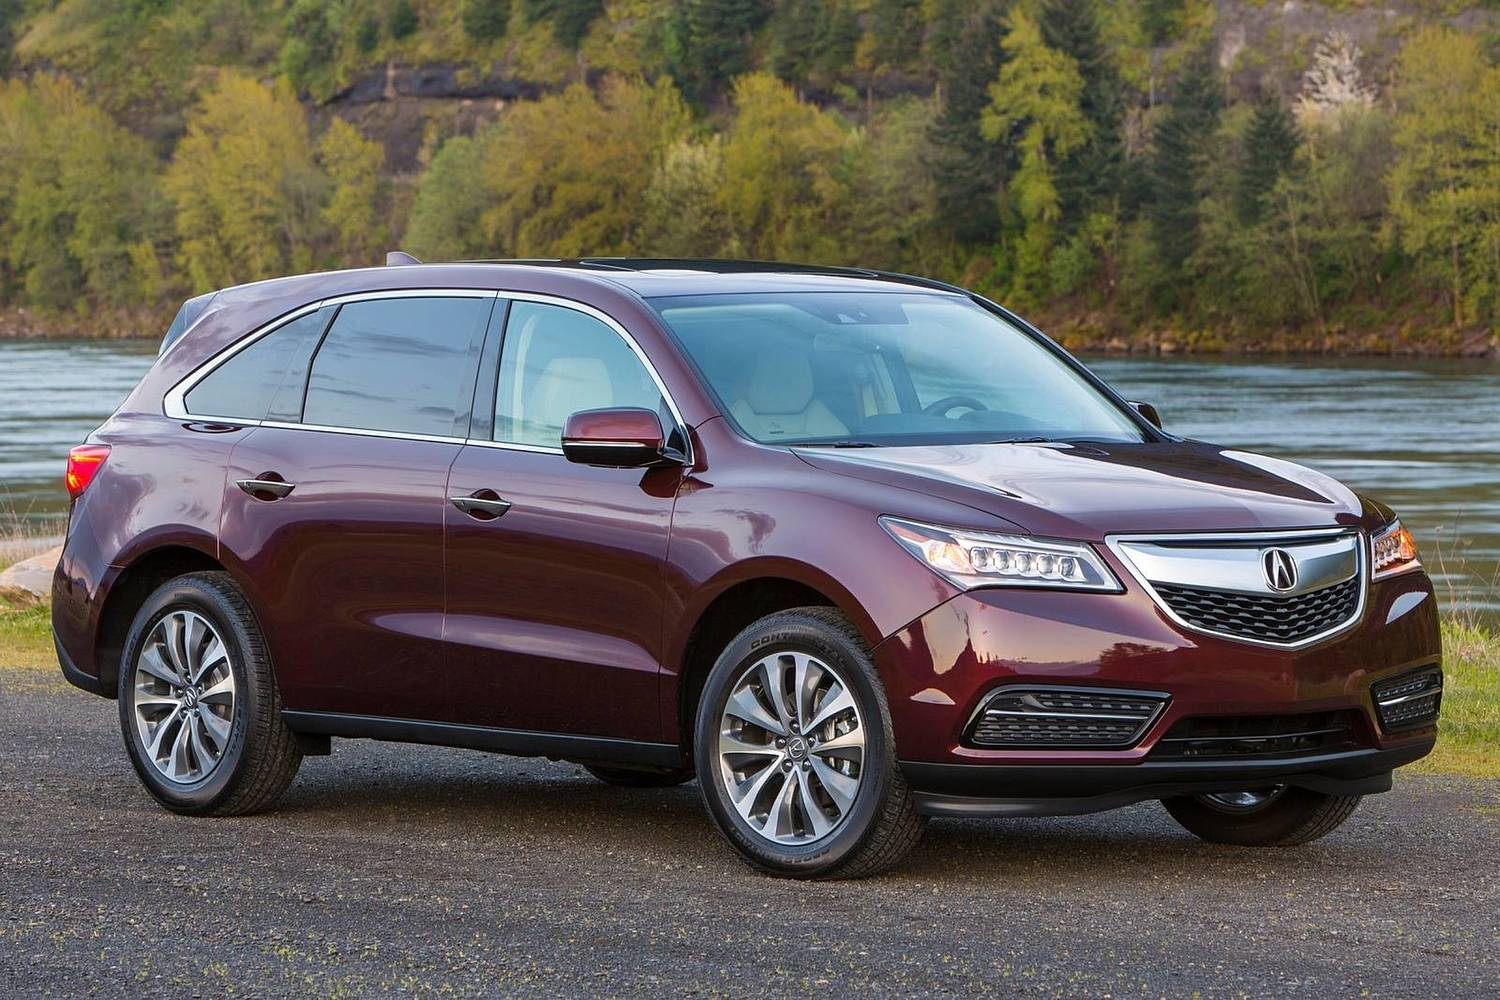 2016 Acura MDX Technology, Entertainment and AcuraWatch Plus Packages 4dr SUV Exterior Shown